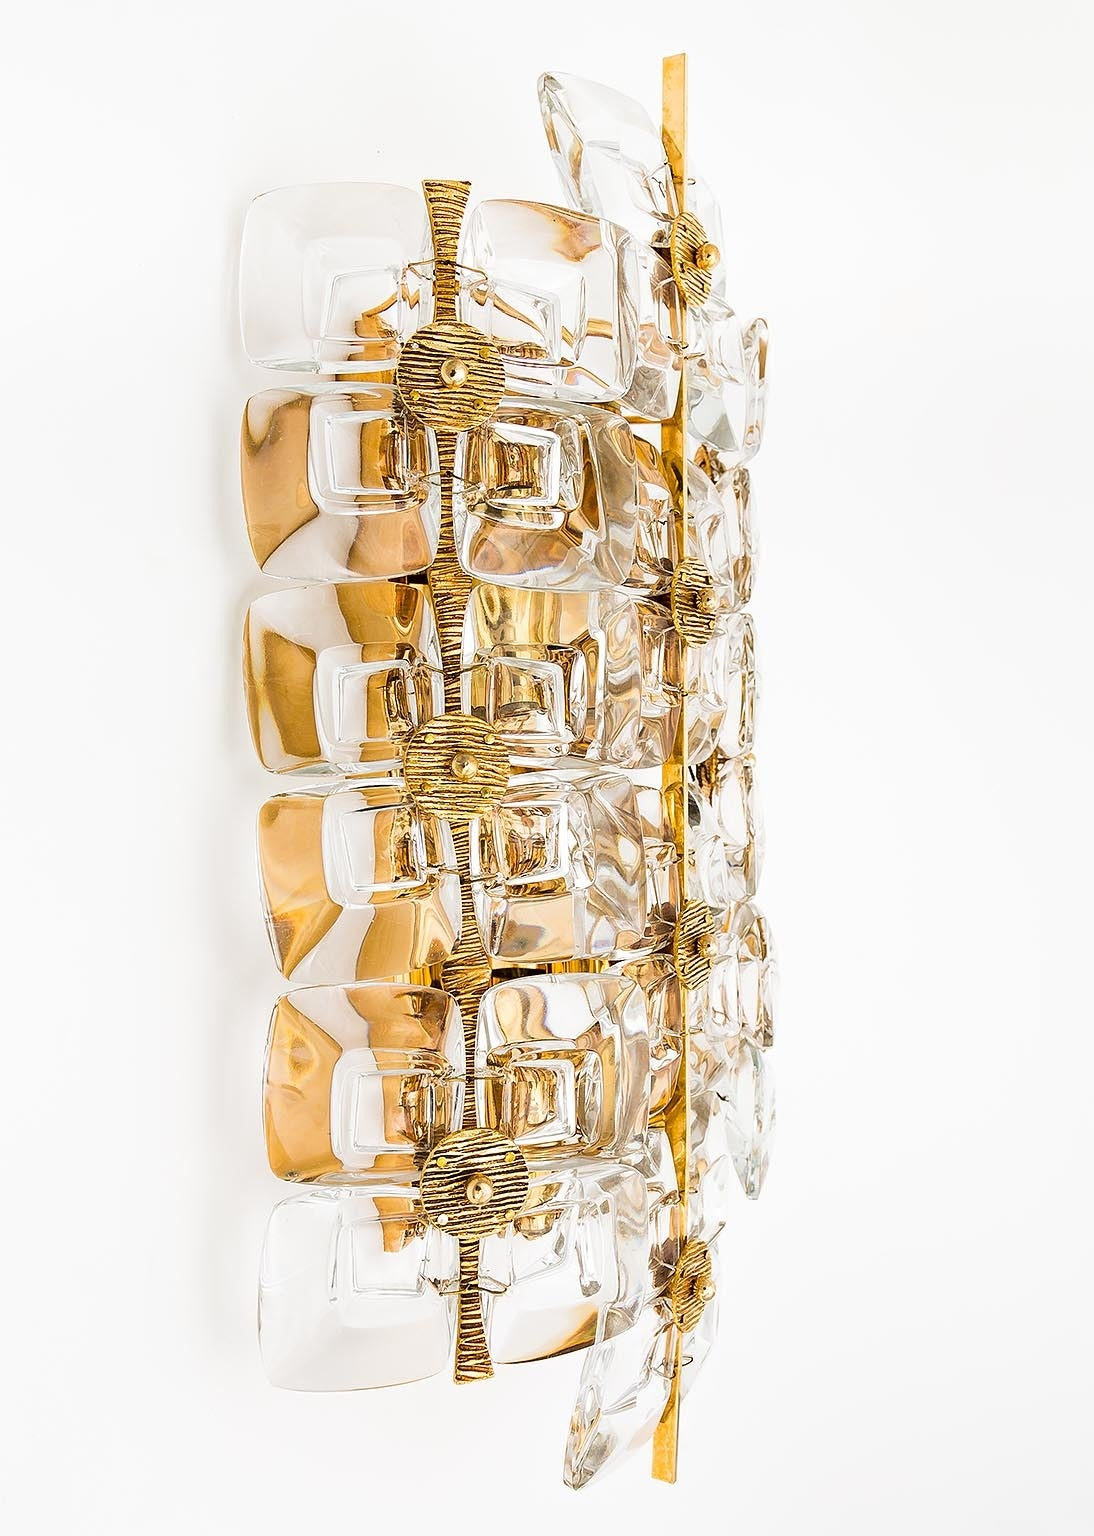 Gold Glass Wall Lights : Large Gold-Plated Brass and Glass Brutalist Wall Light Sconce by Palwa, 1960s For Sale at 1stdibs